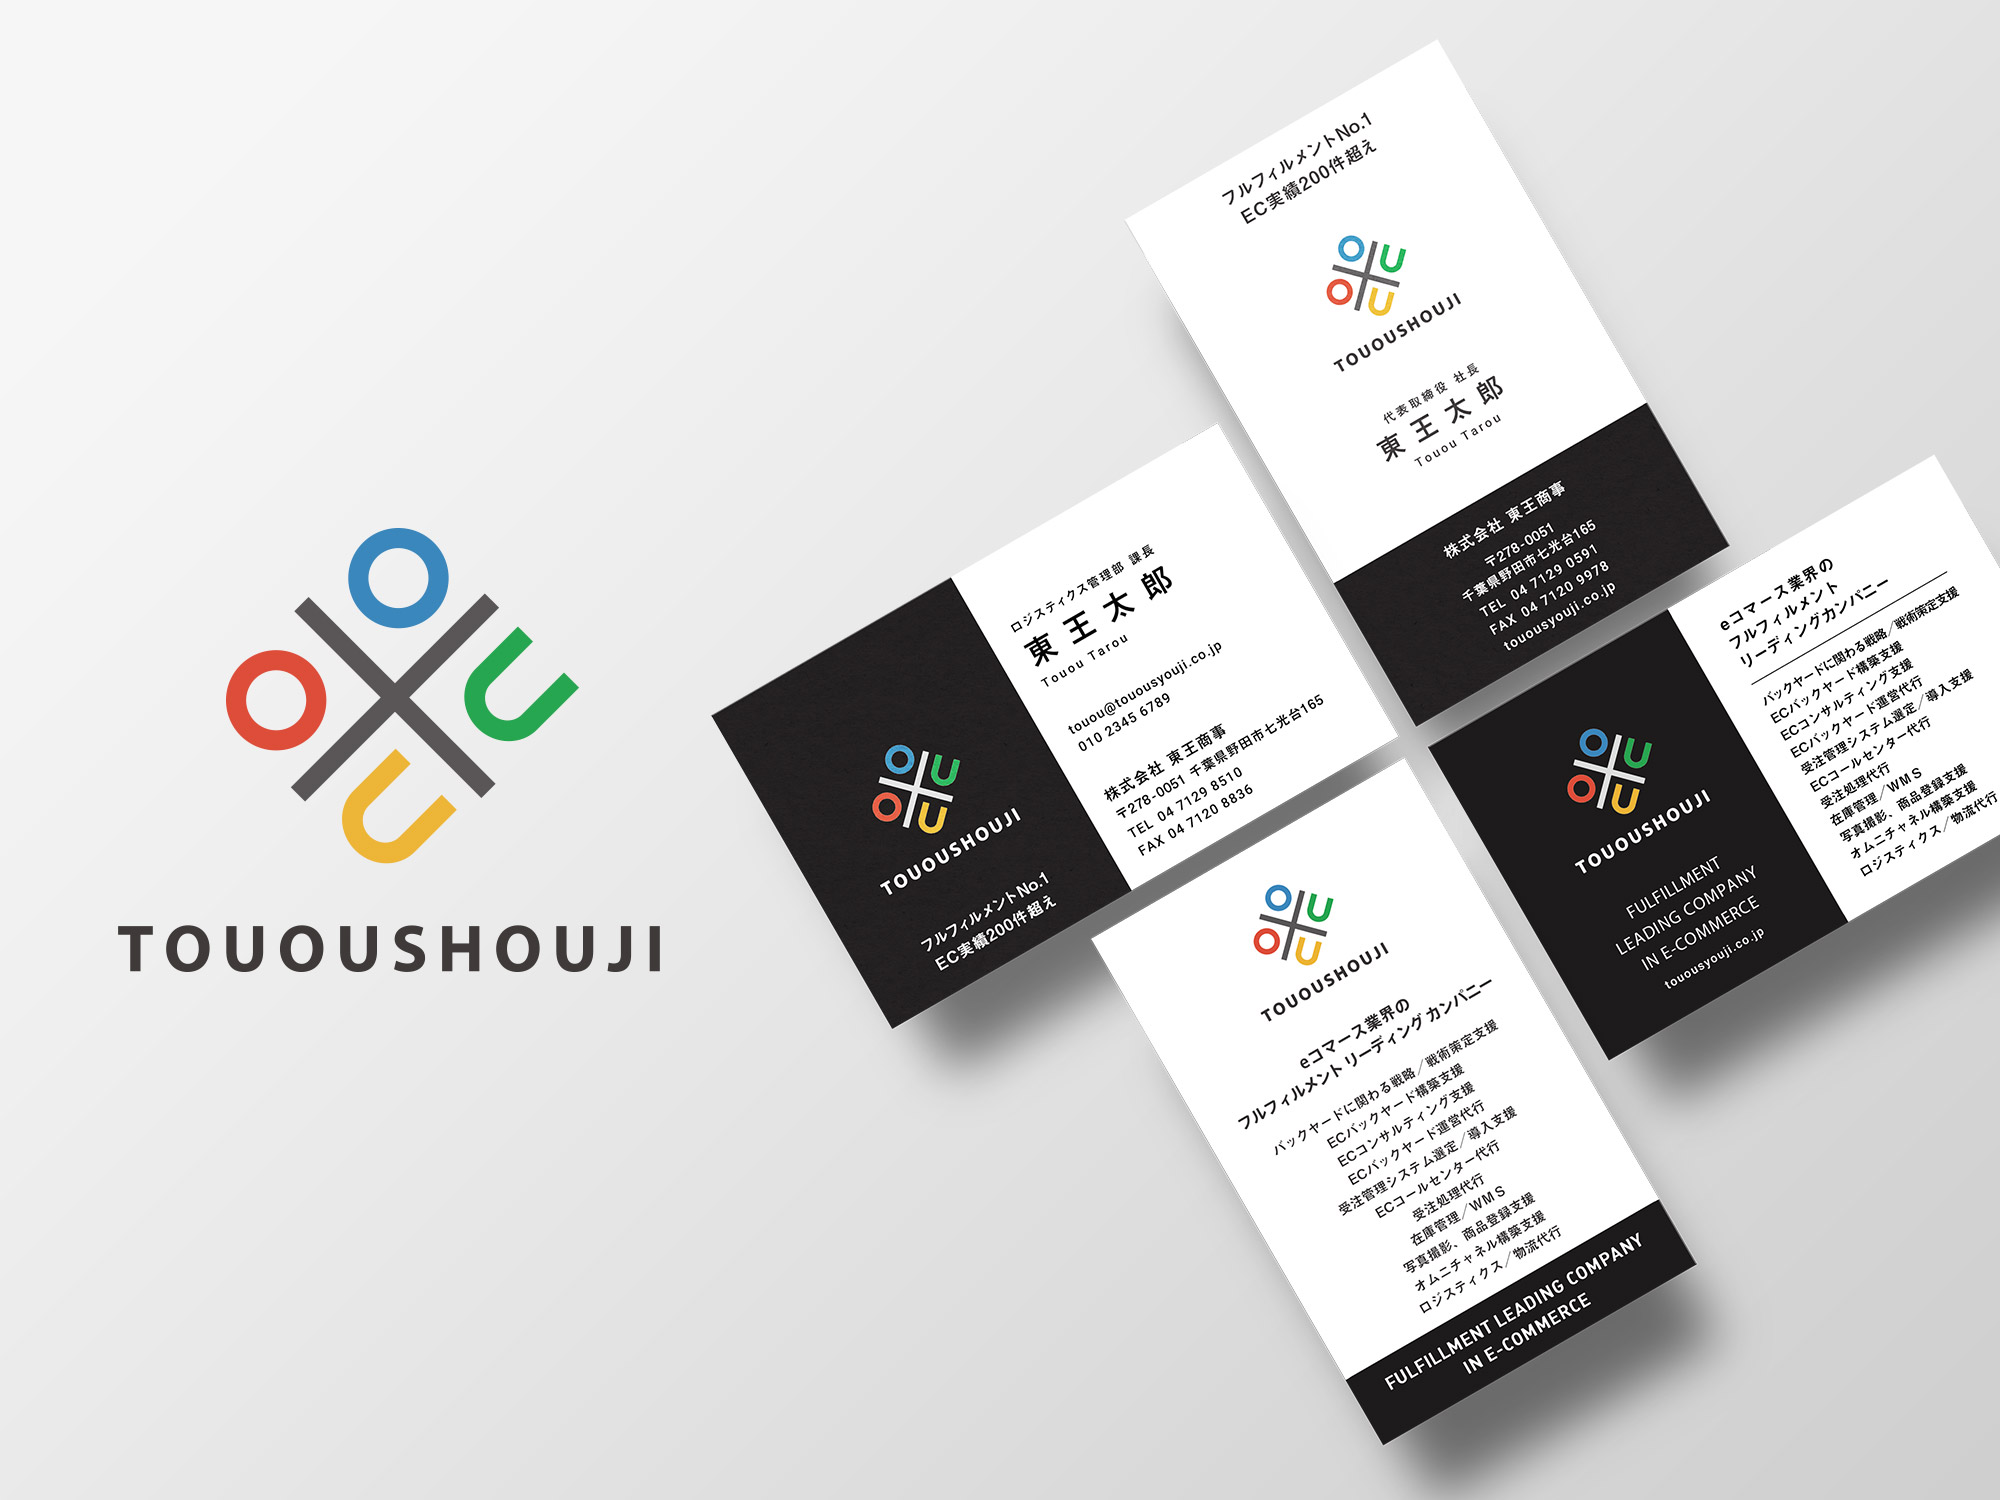 LOGO & BUISINESS CARD & CORPORATE DESIGN